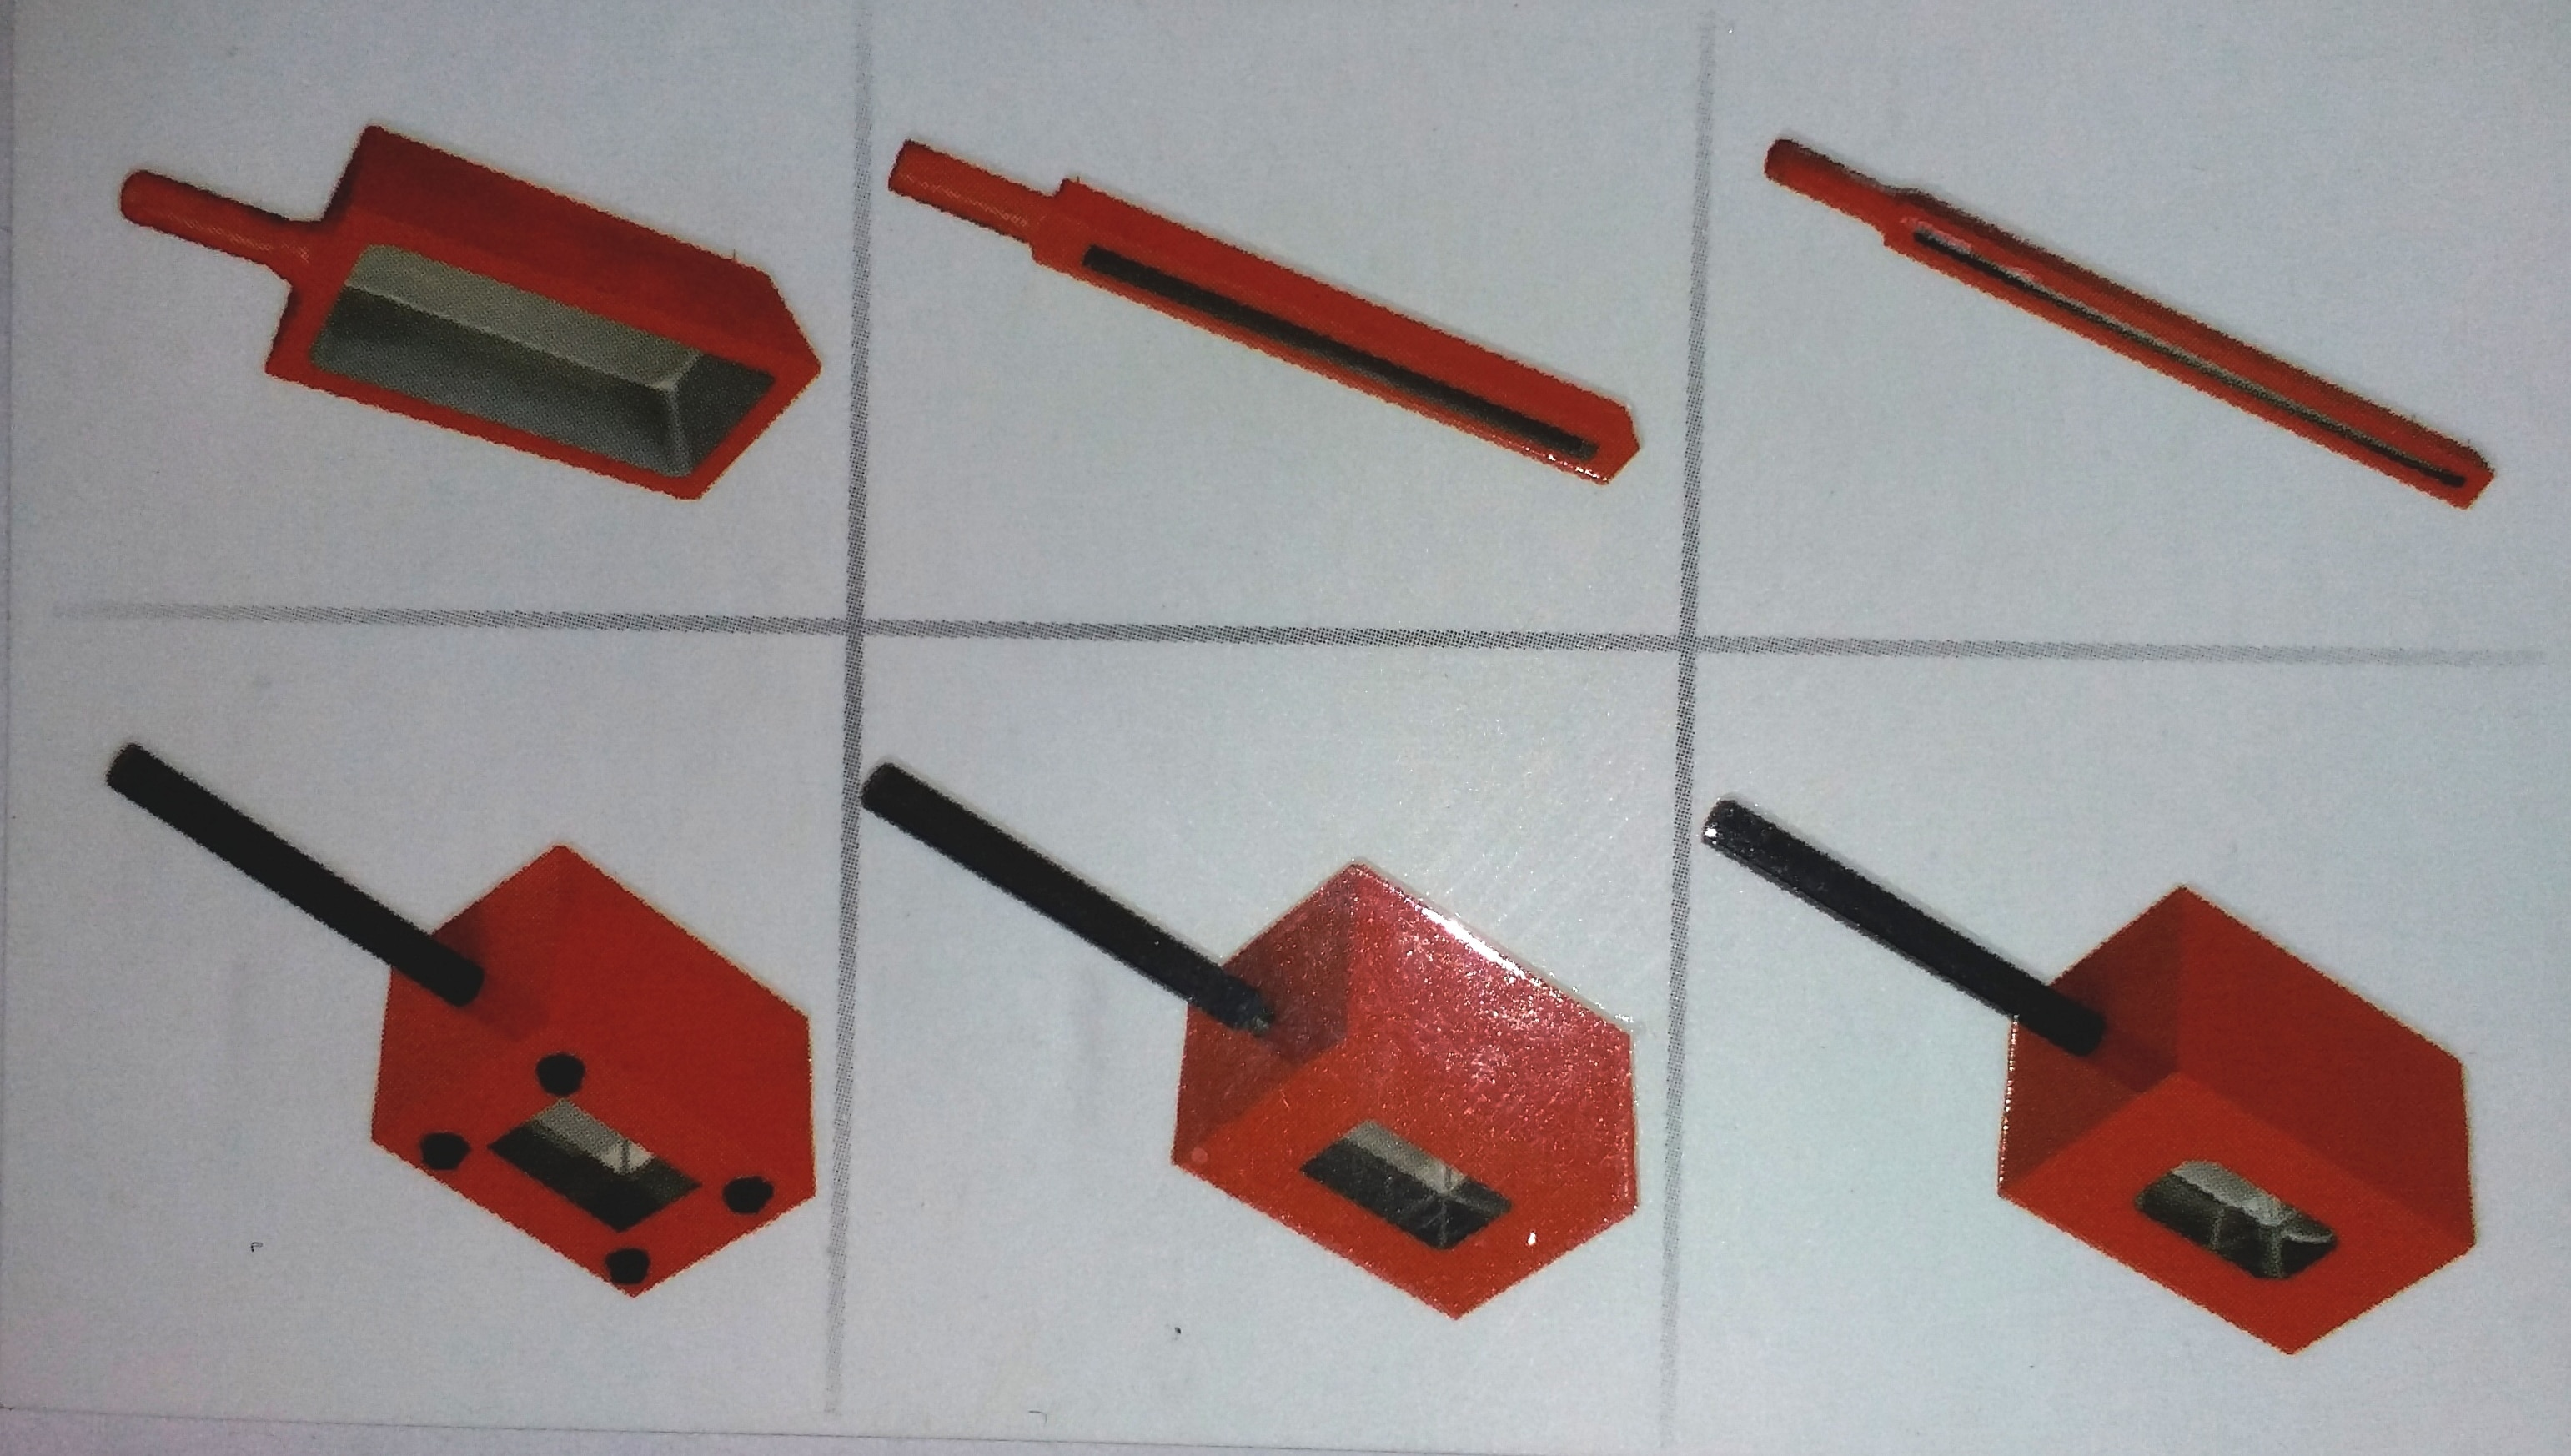 we are Leading Manufacturer of Silver Mould Block in Ahmedabad, Gujarat, India We are Also Service Provider in Ahmedabad, Gujarat, India  For More Details Contact US: 9727155144